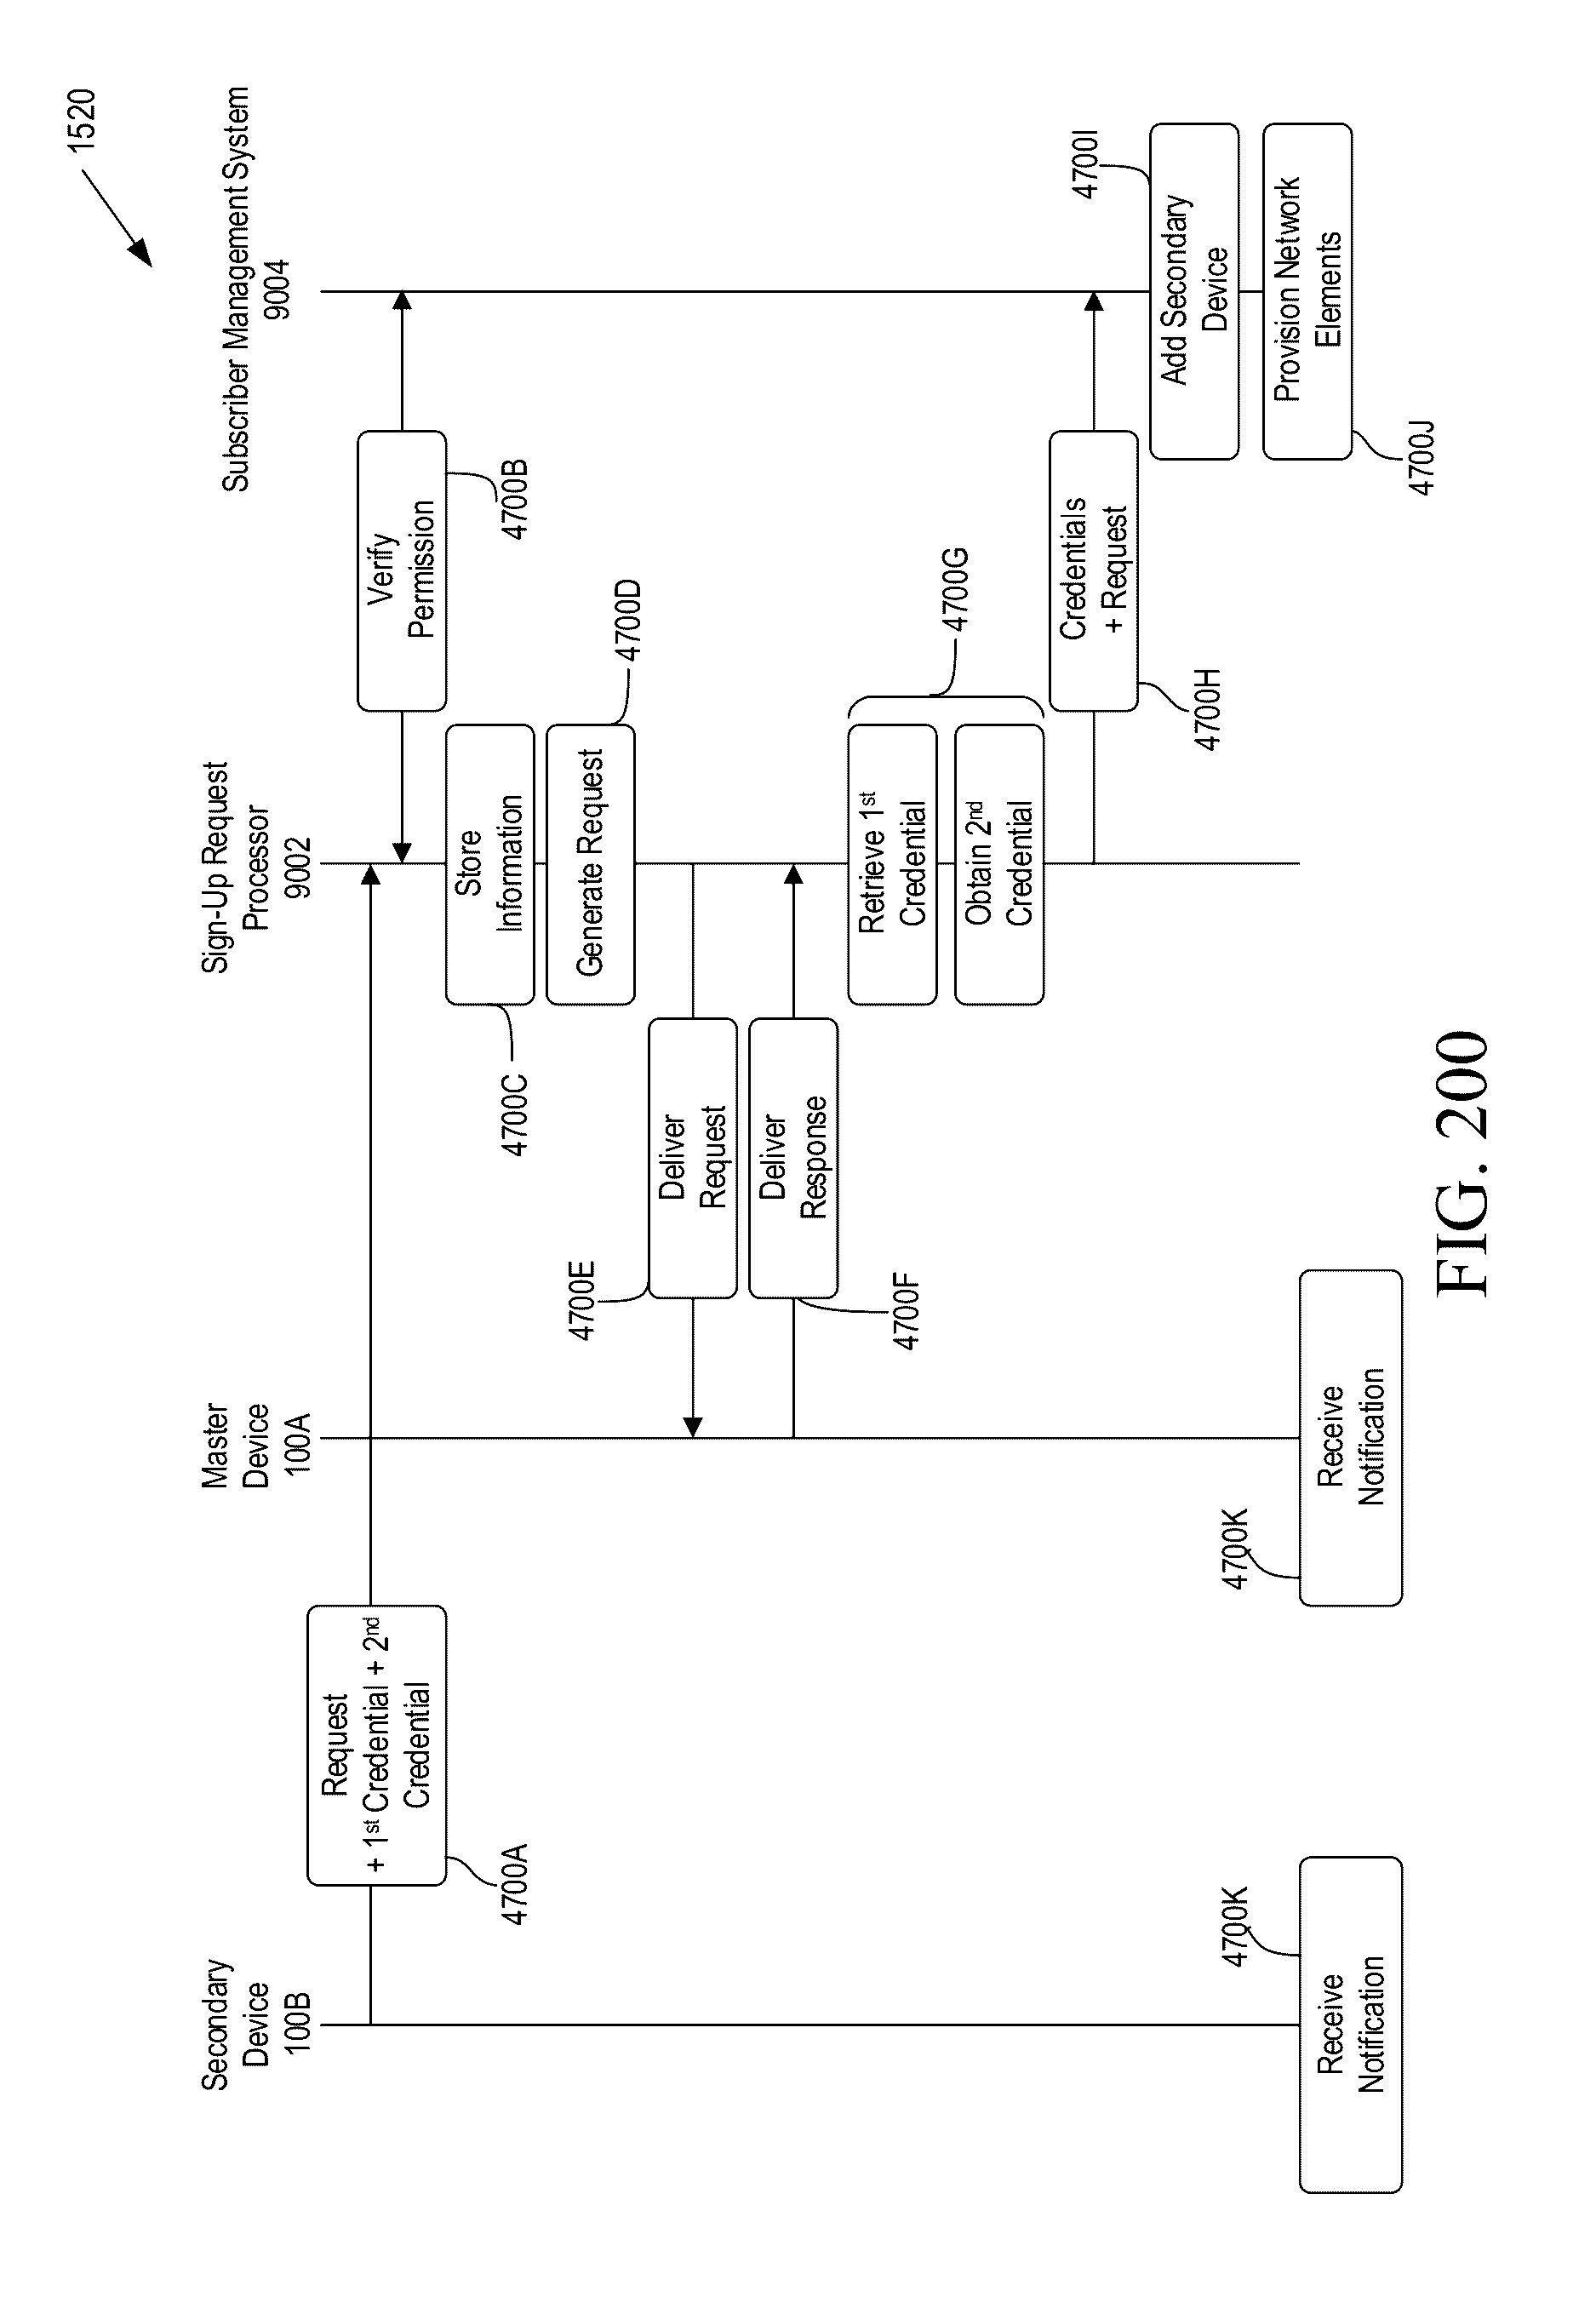 Negative Buck Regulator Circuit Diagram Tradeoficcom - Wiring ... on